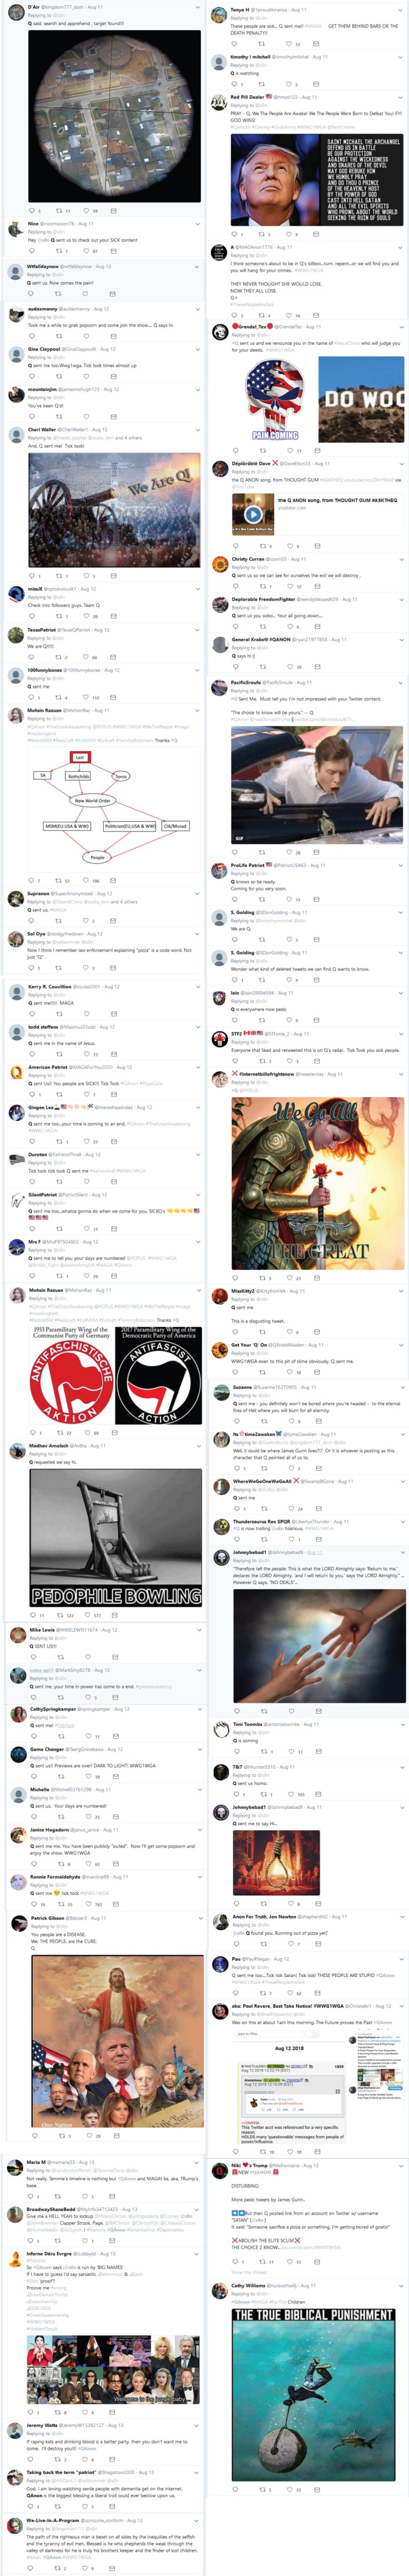 Satan parody attacks gets attacked by qanon mob mentality - Elemi Fuentes